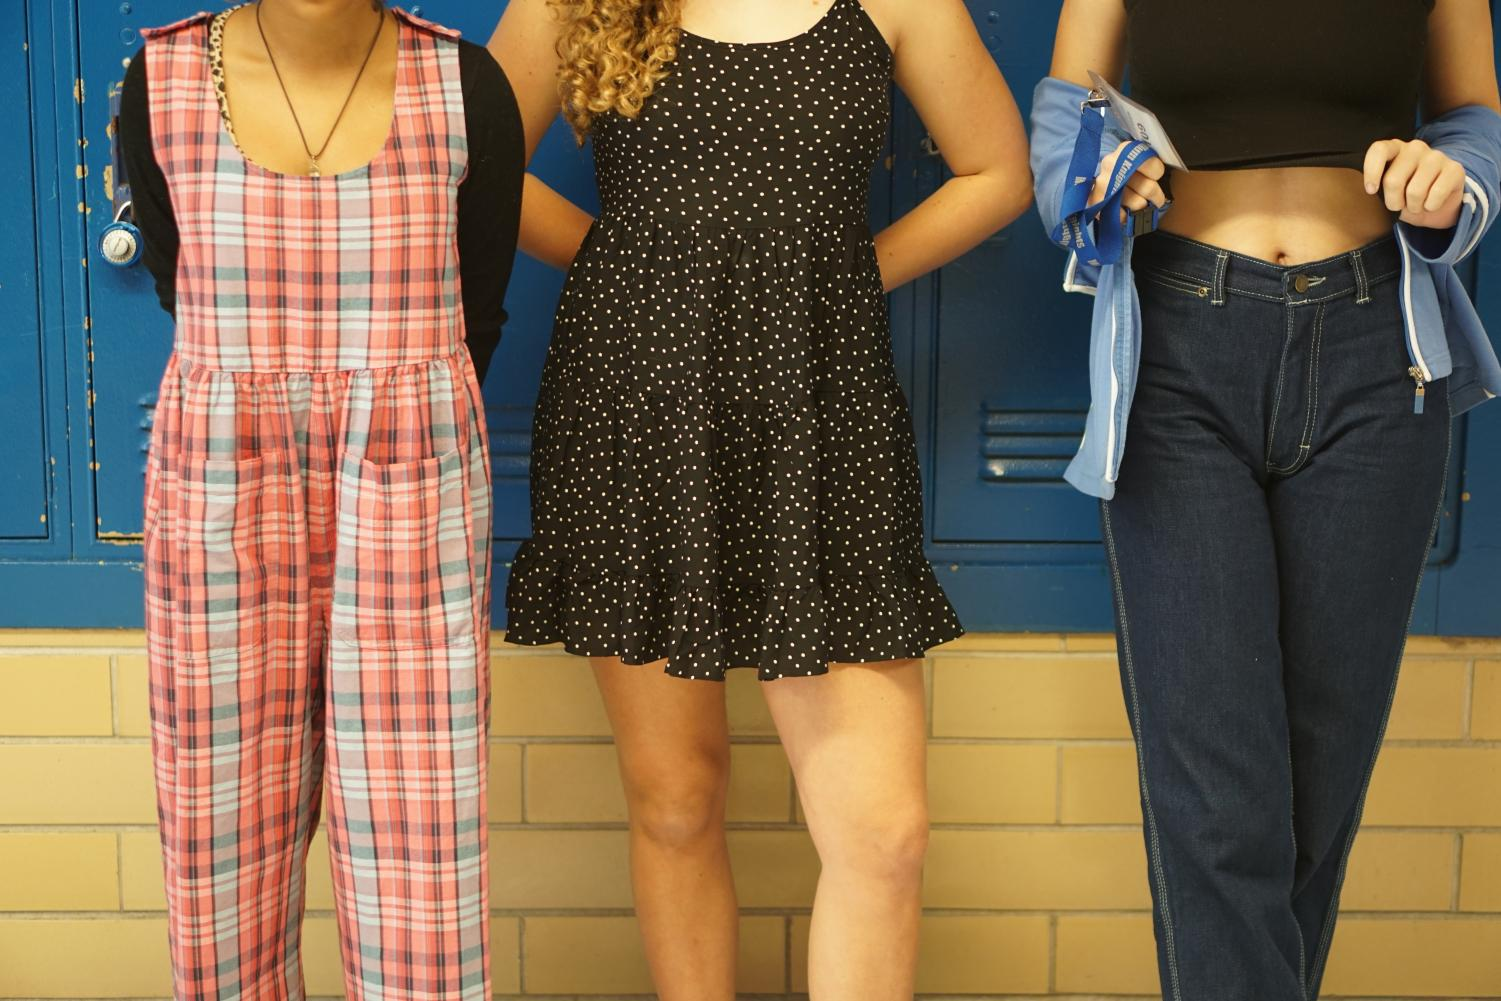 Students aren't supposed to expose their midriff, but other than that, the new dress code allows students greater flexibility to wear what they want to wear. Photo by Samantha Powers.